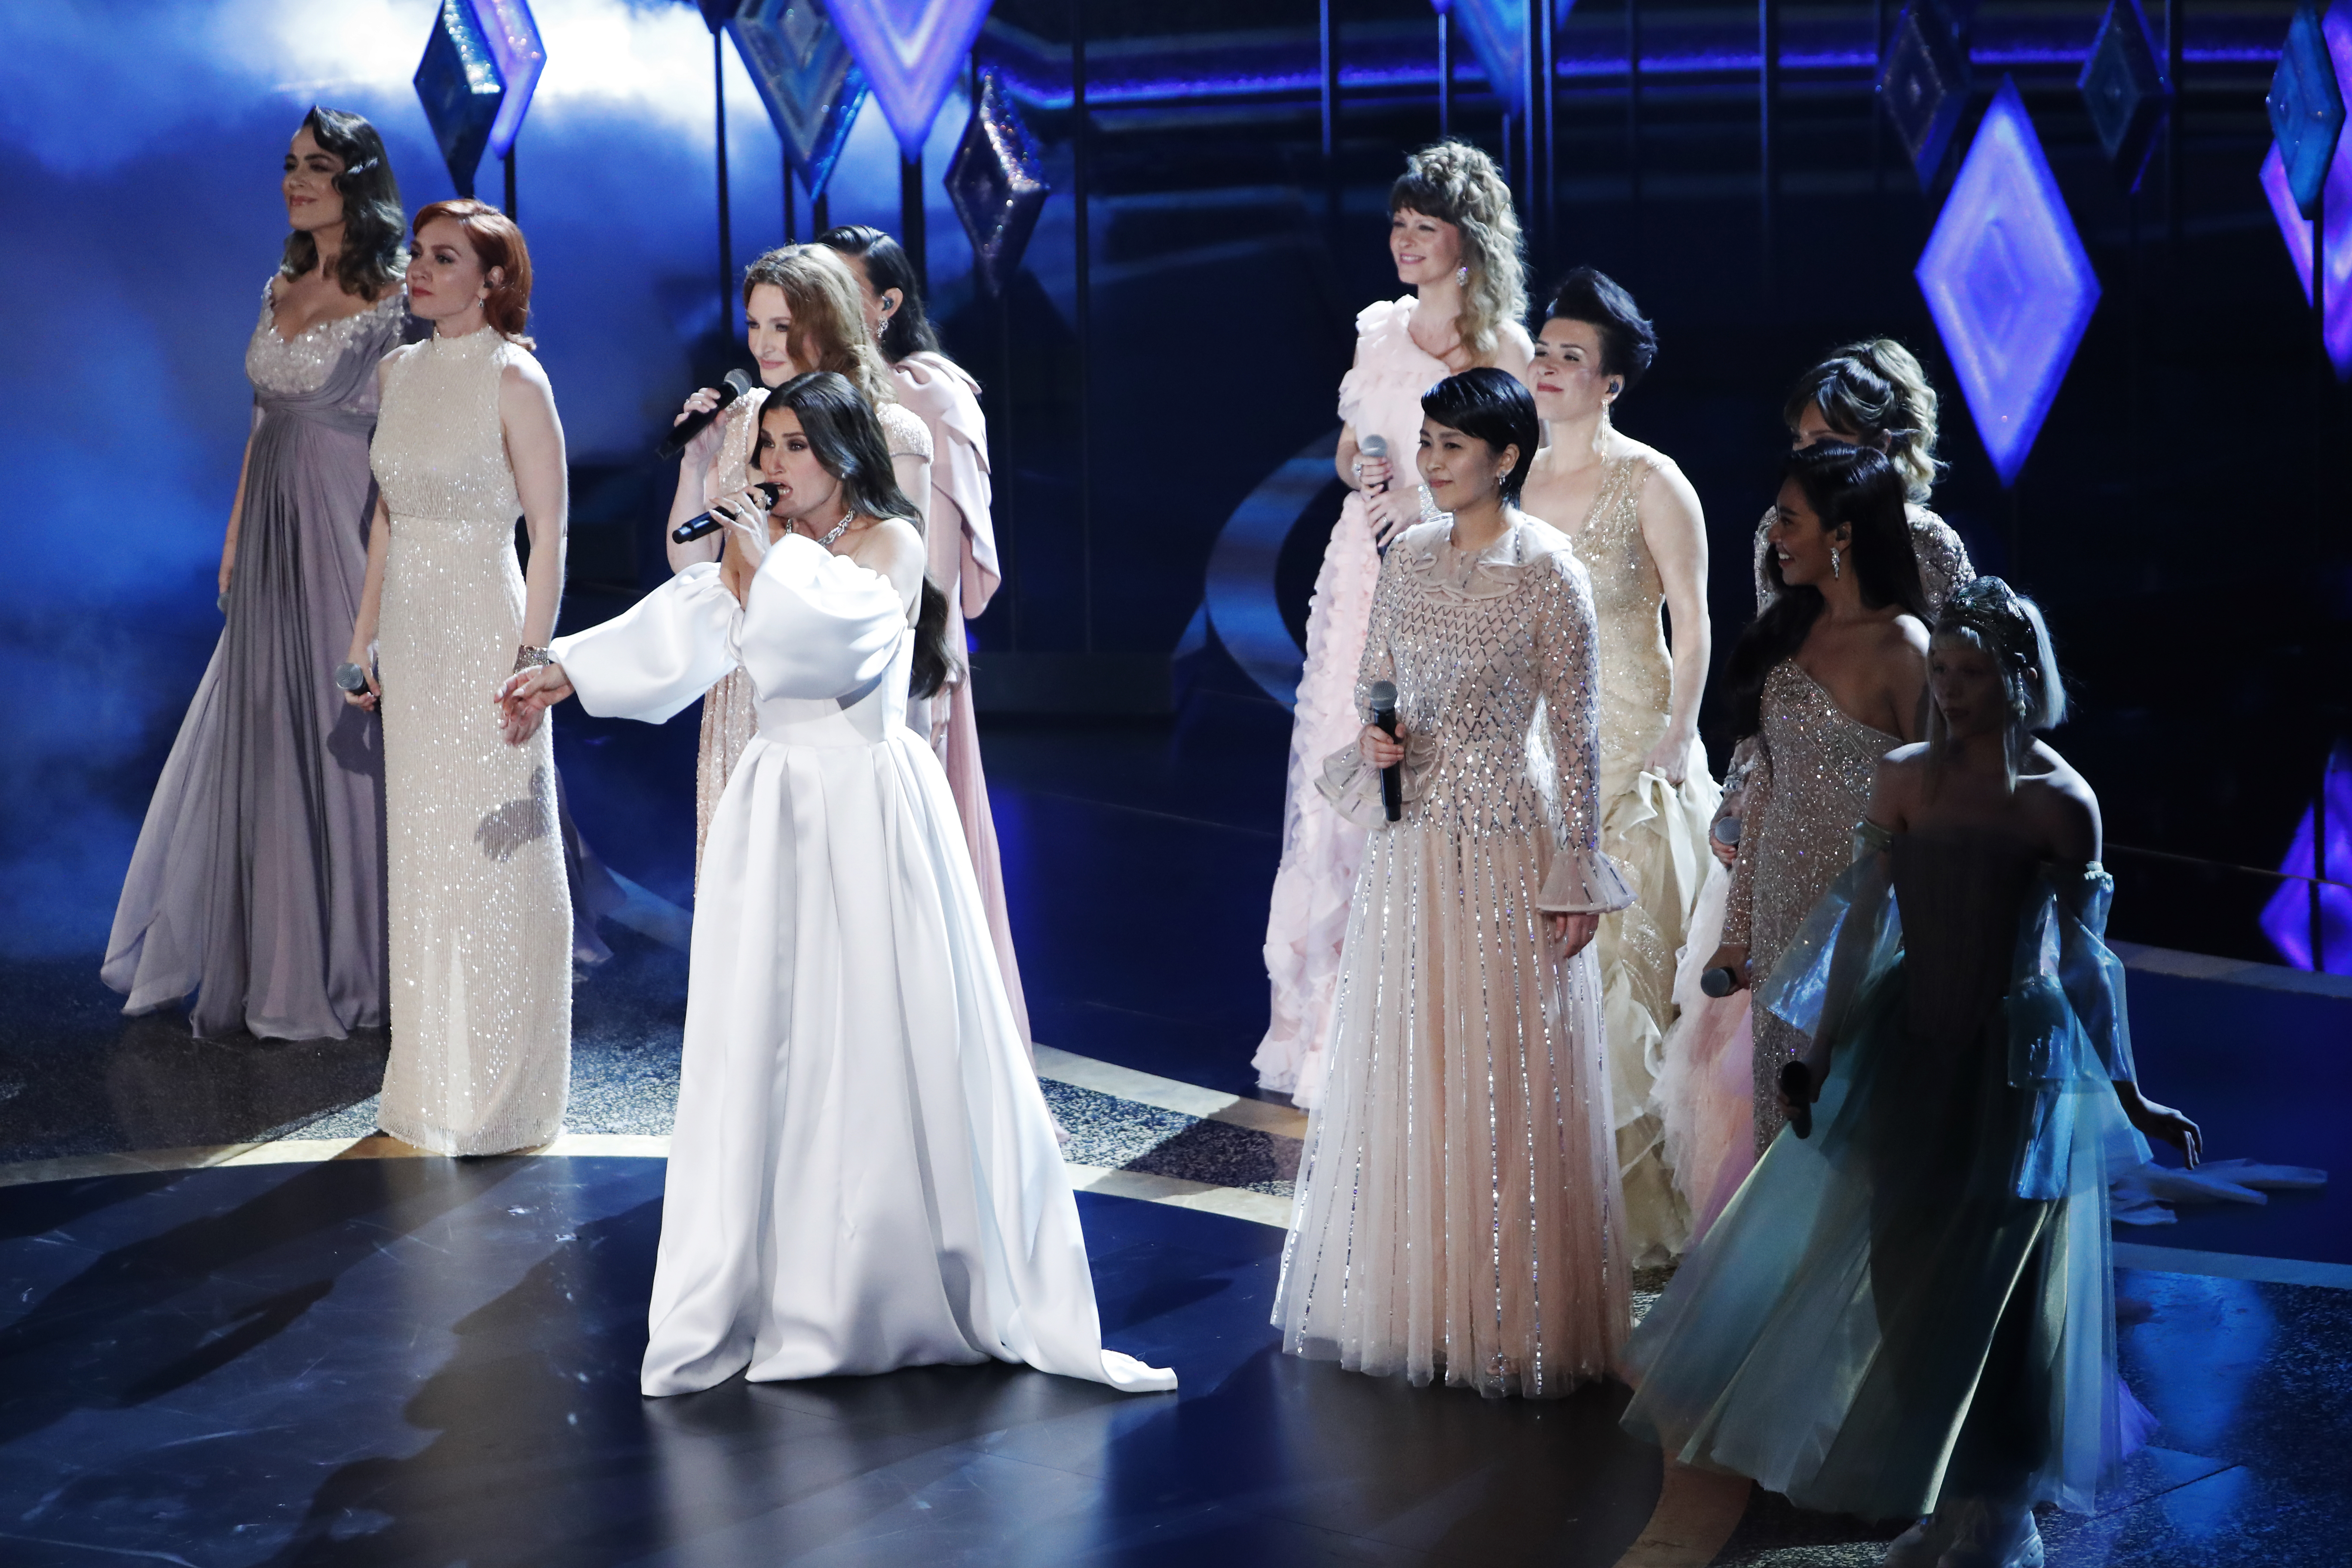 """Idina Menzel, Aurora, and nine performers from around the world perform """"Into the Unknown"""" from """"Frozen II"""" during the Oscars show at the 92nd Academy Awards in Hollywood, Los Angeles, California, U.S., February 9, 2020."""